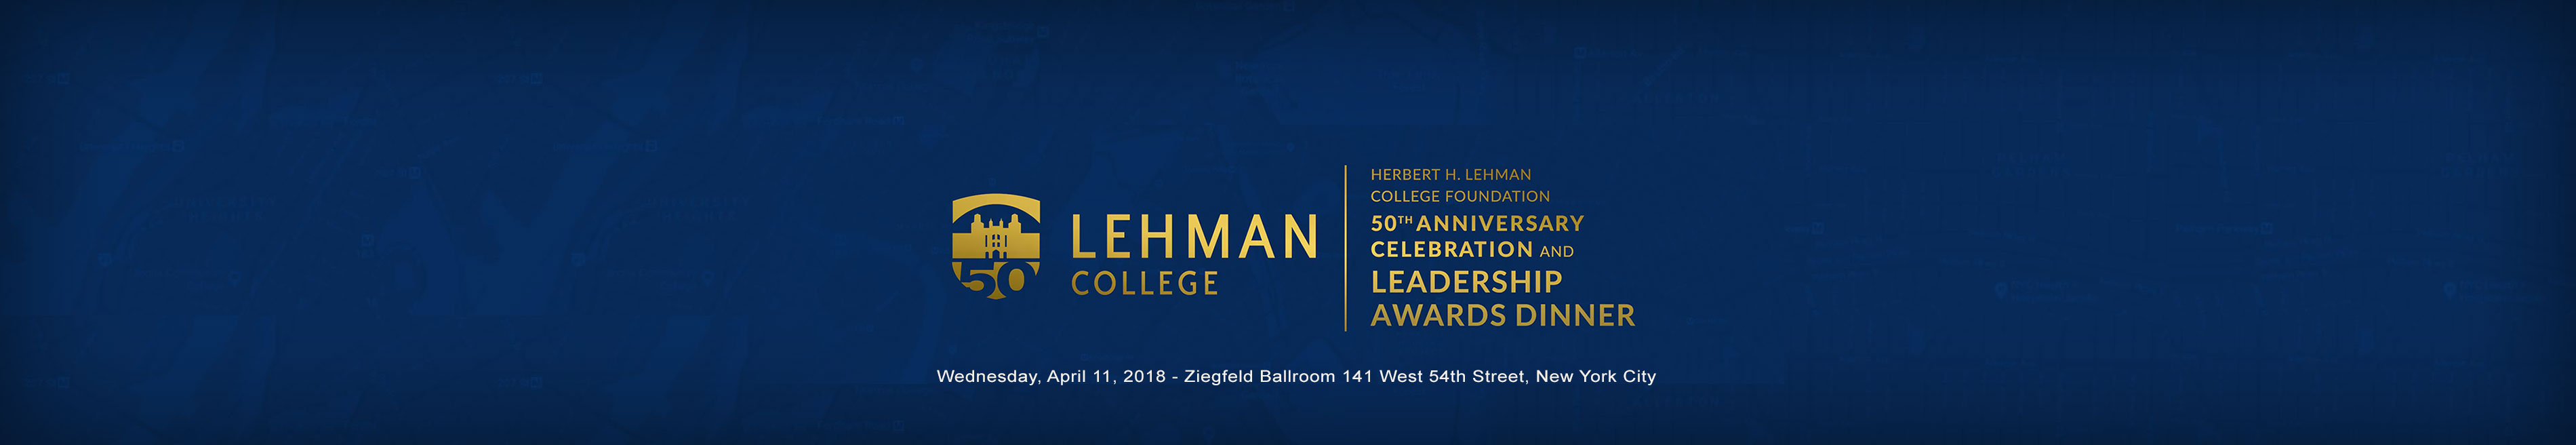 50th Anniversary Celebration and Leadership Awards Dinner